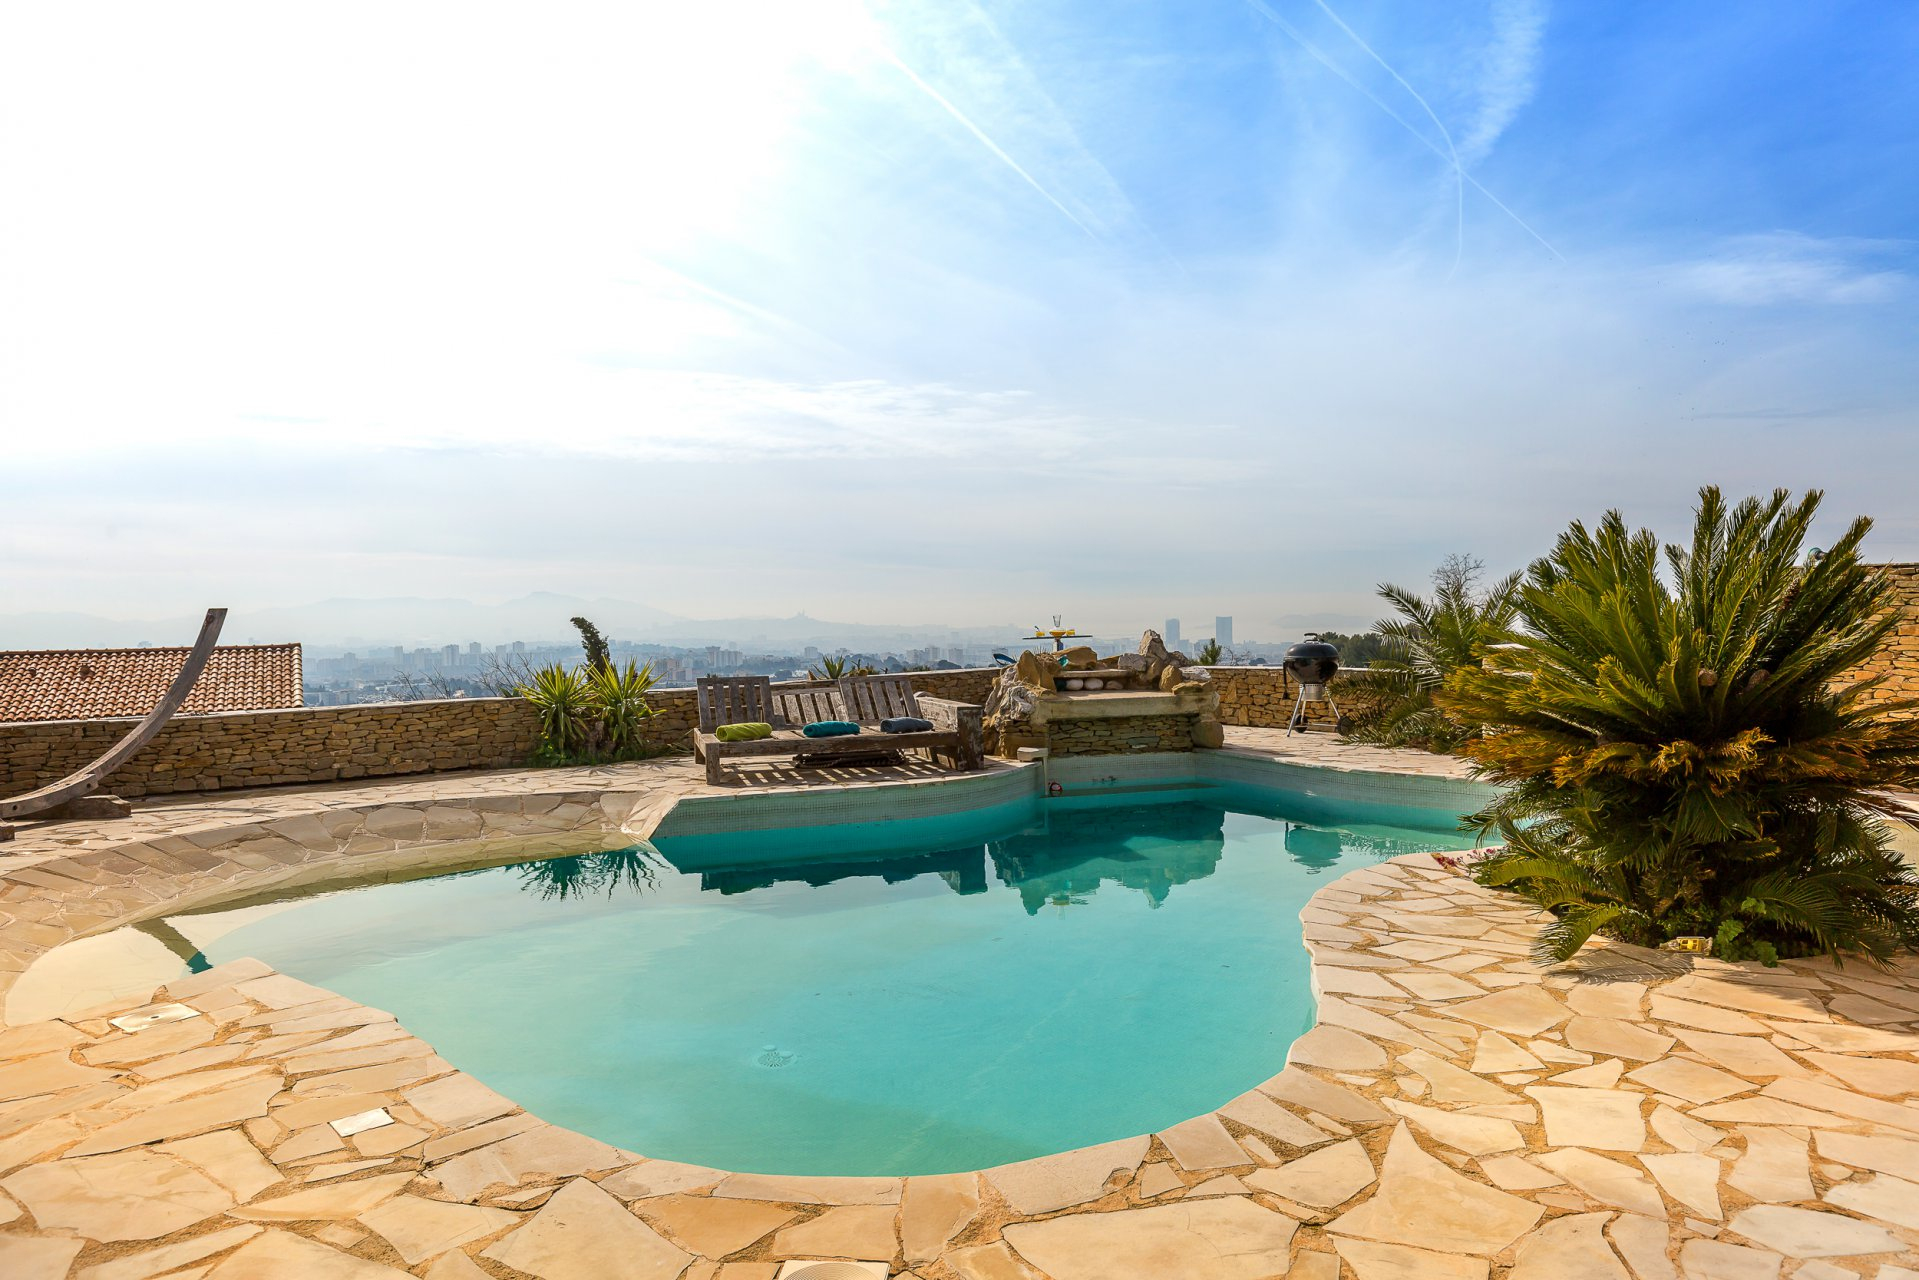 Provence Beaches Villa Rentals Marseille With Private Pool And Sea View avec Hotel Piscine Marseille